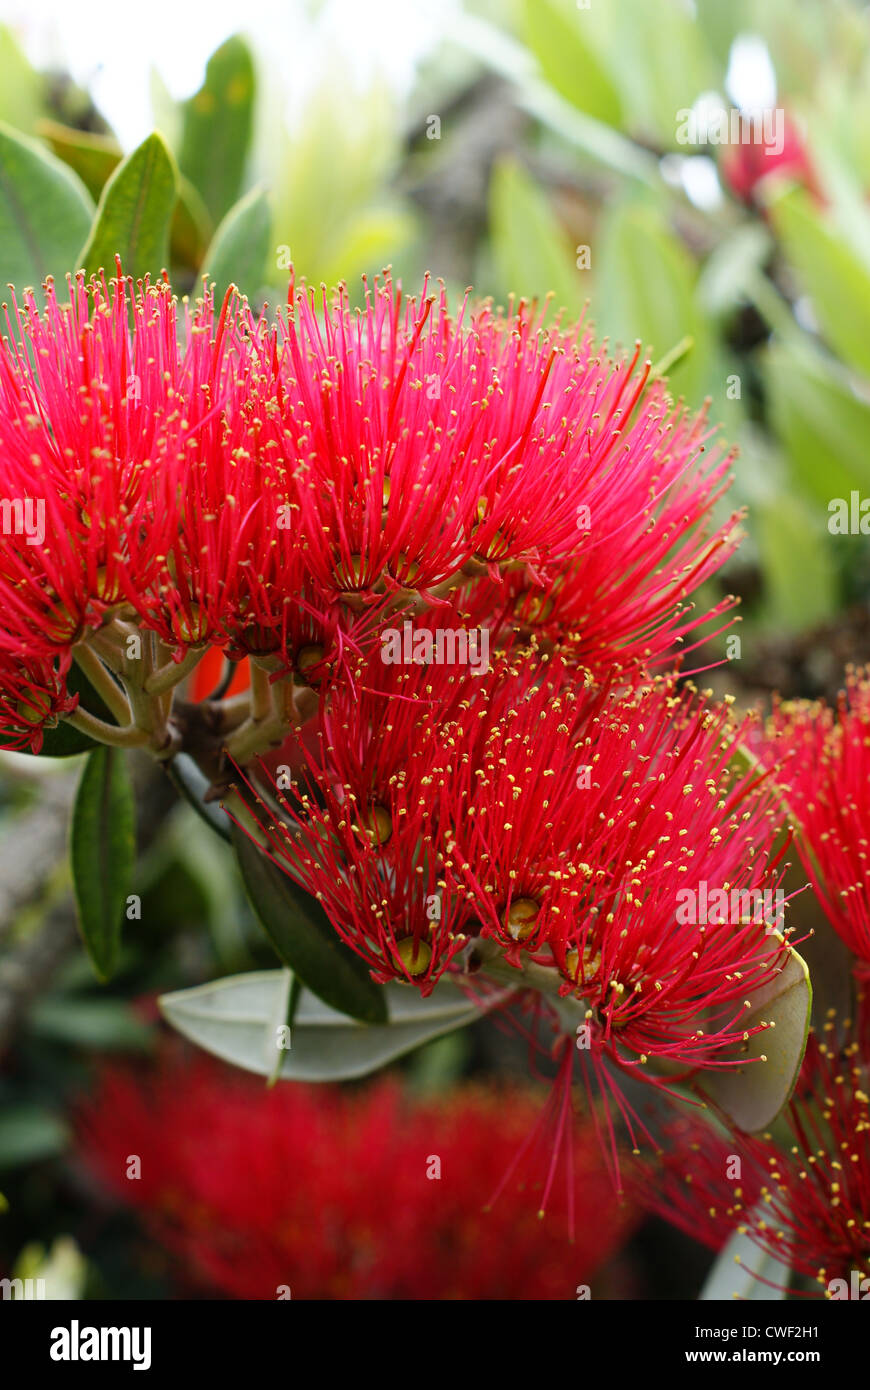 Flowers of the Pohutukawa (Metrosideros excelsa) a native tree of New Zealand - Stock Image